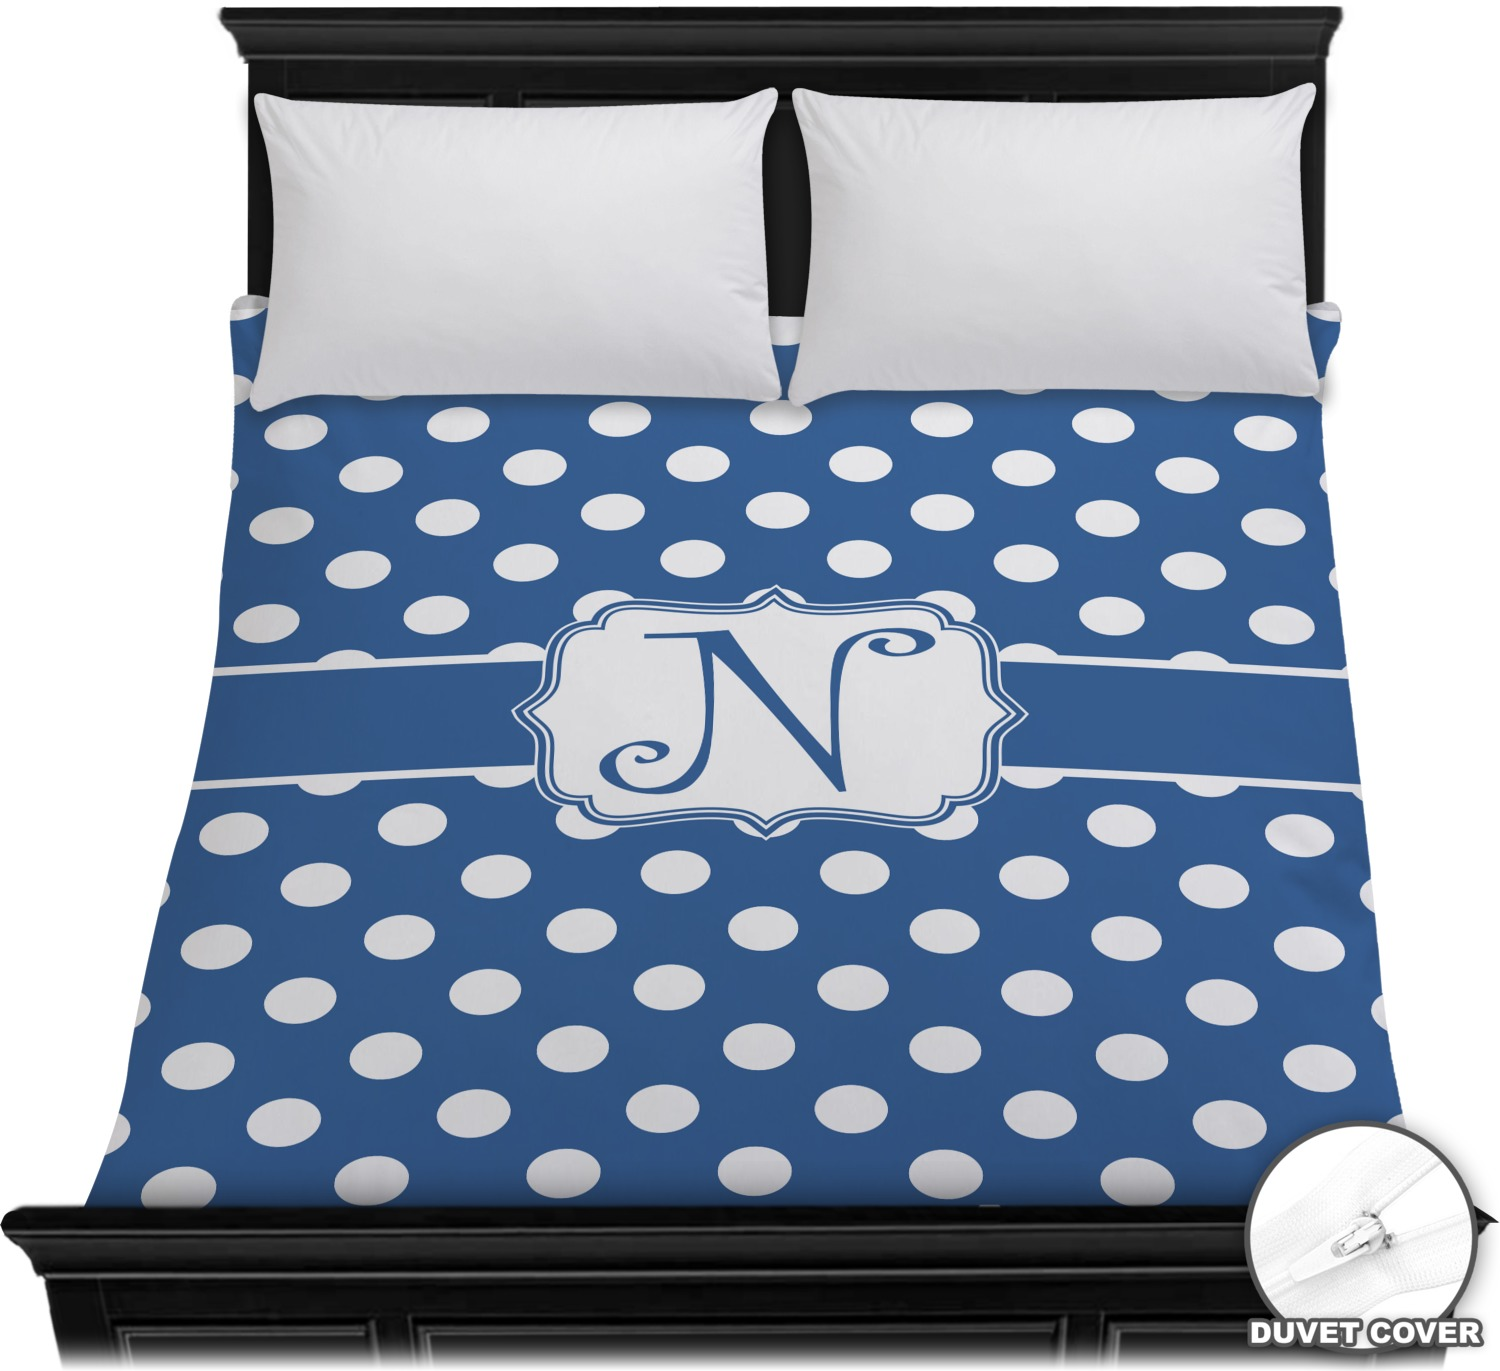 polka dots duvet cover full queen personalized youcustomizeit. Black Bedroom Furniture Sets. Home Design Ideas